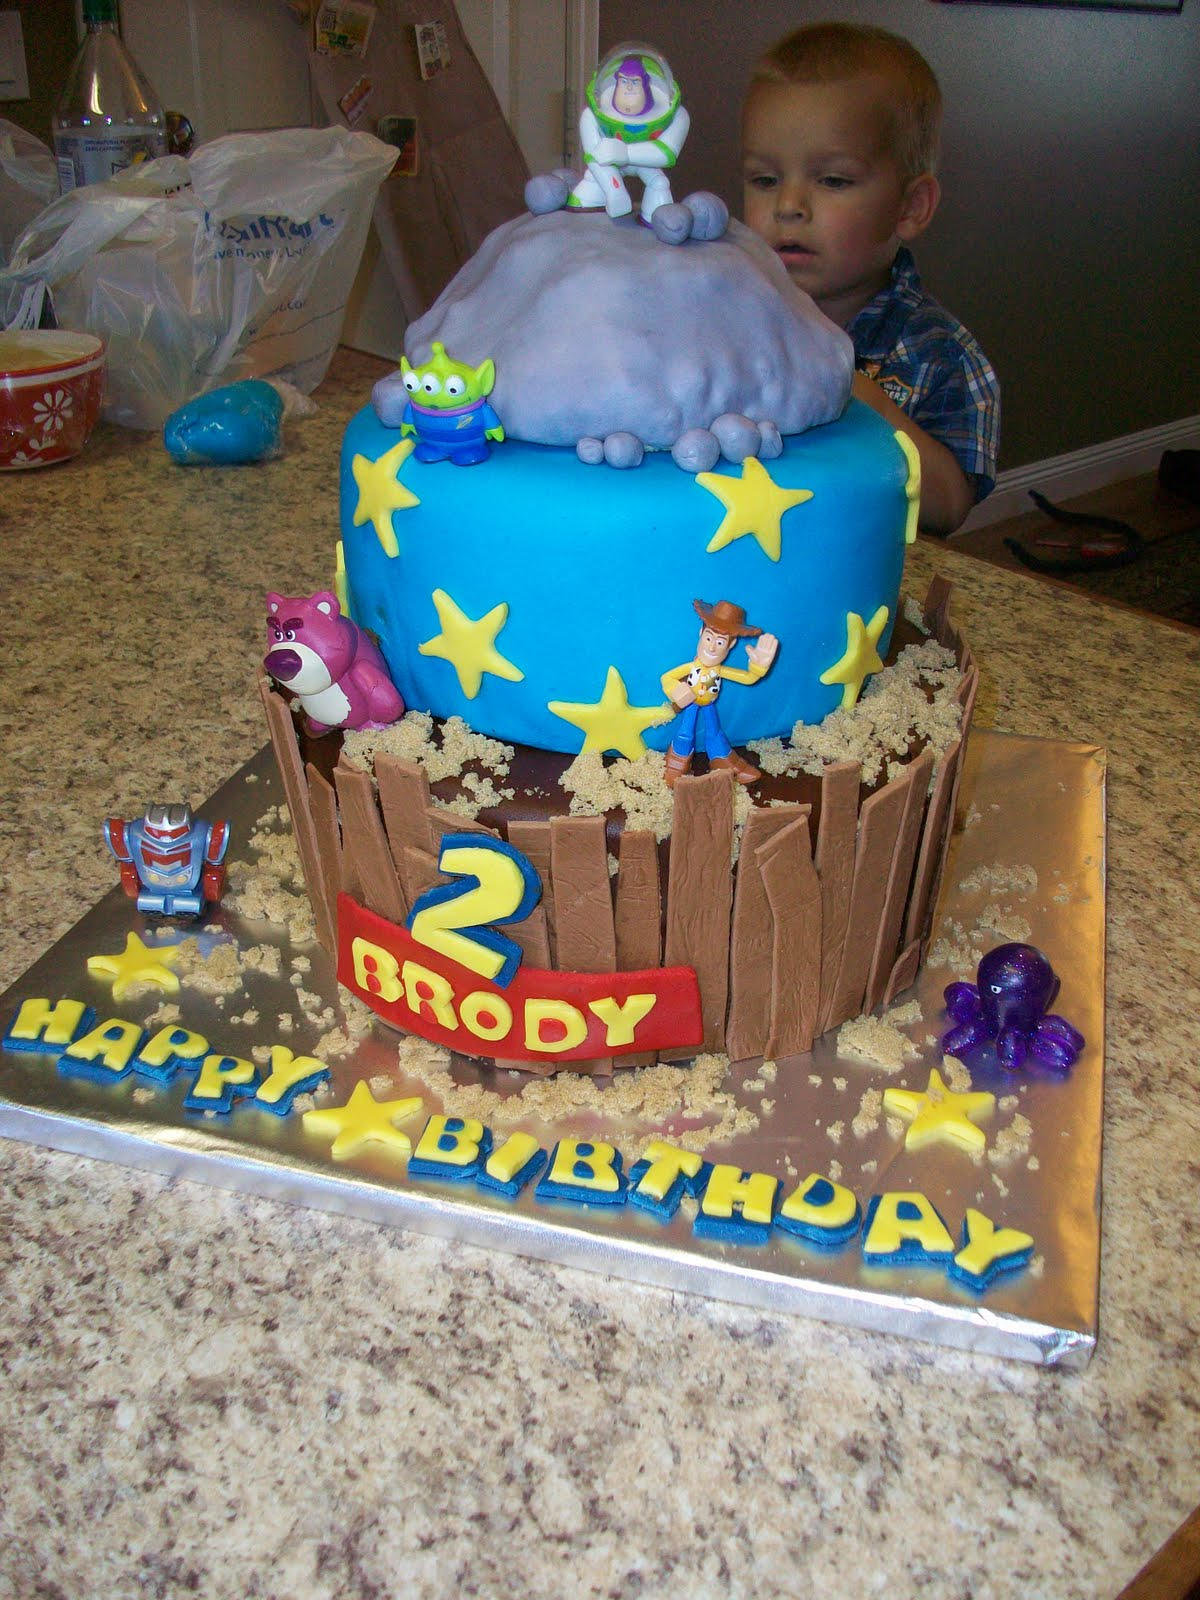 The Ardern Family Toy Story Cake